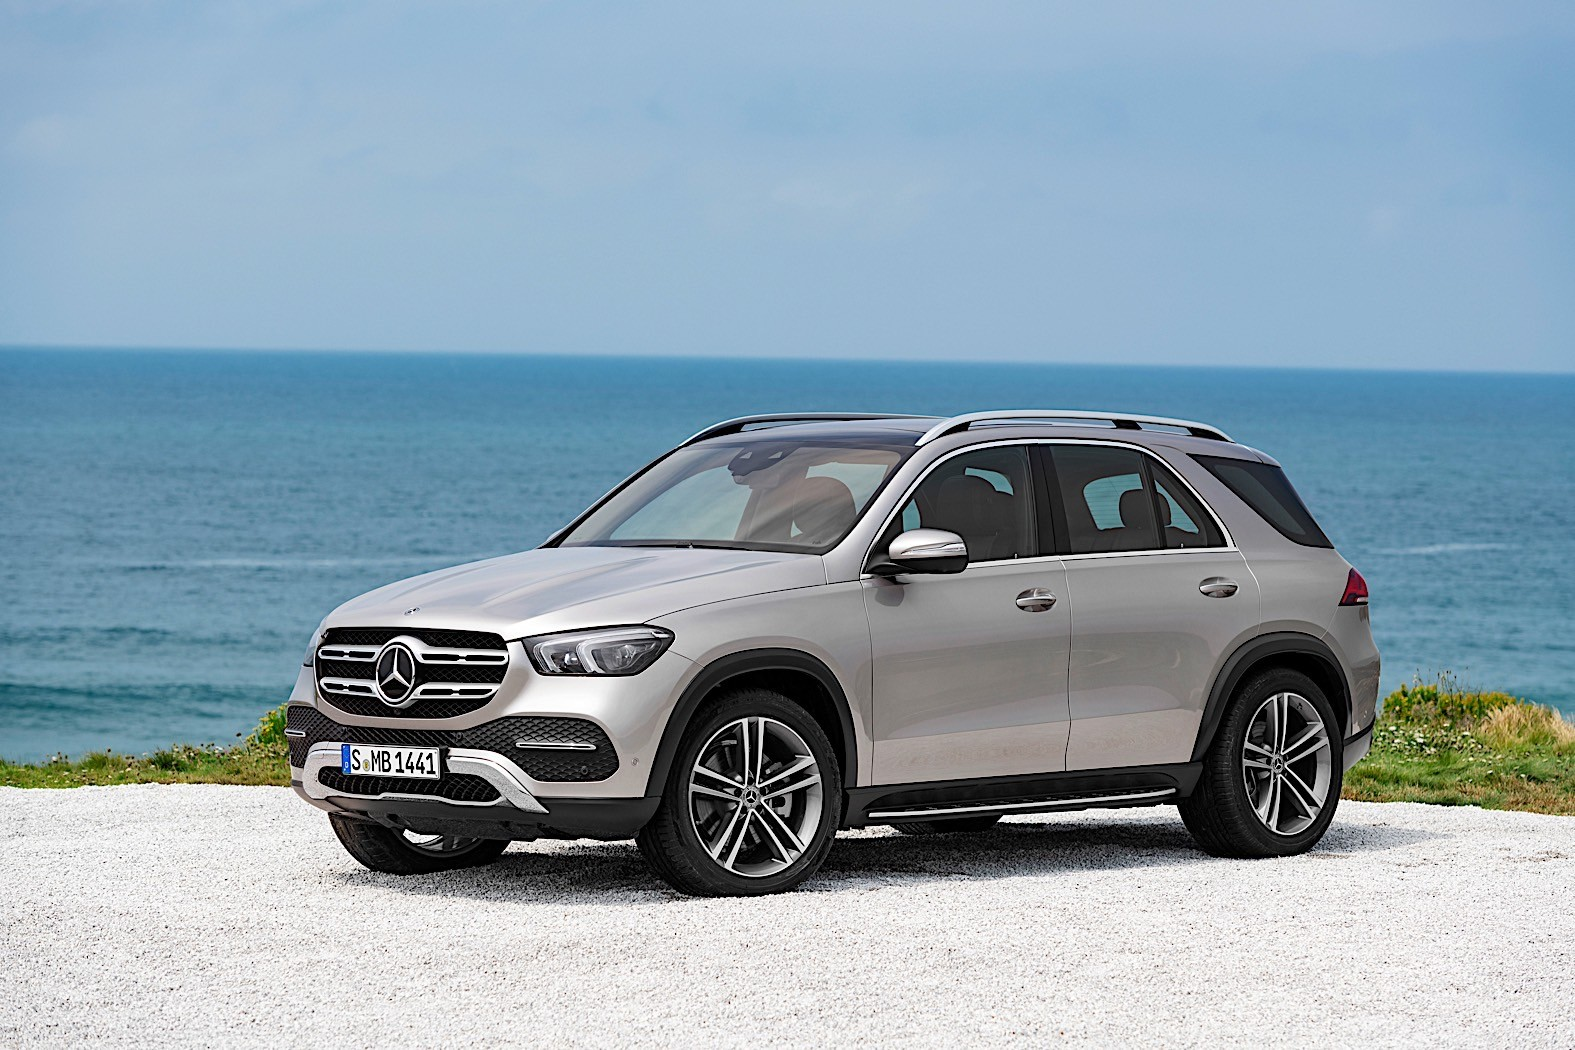 Mercedes Benz Gle Breaks Cover Packed With Technology